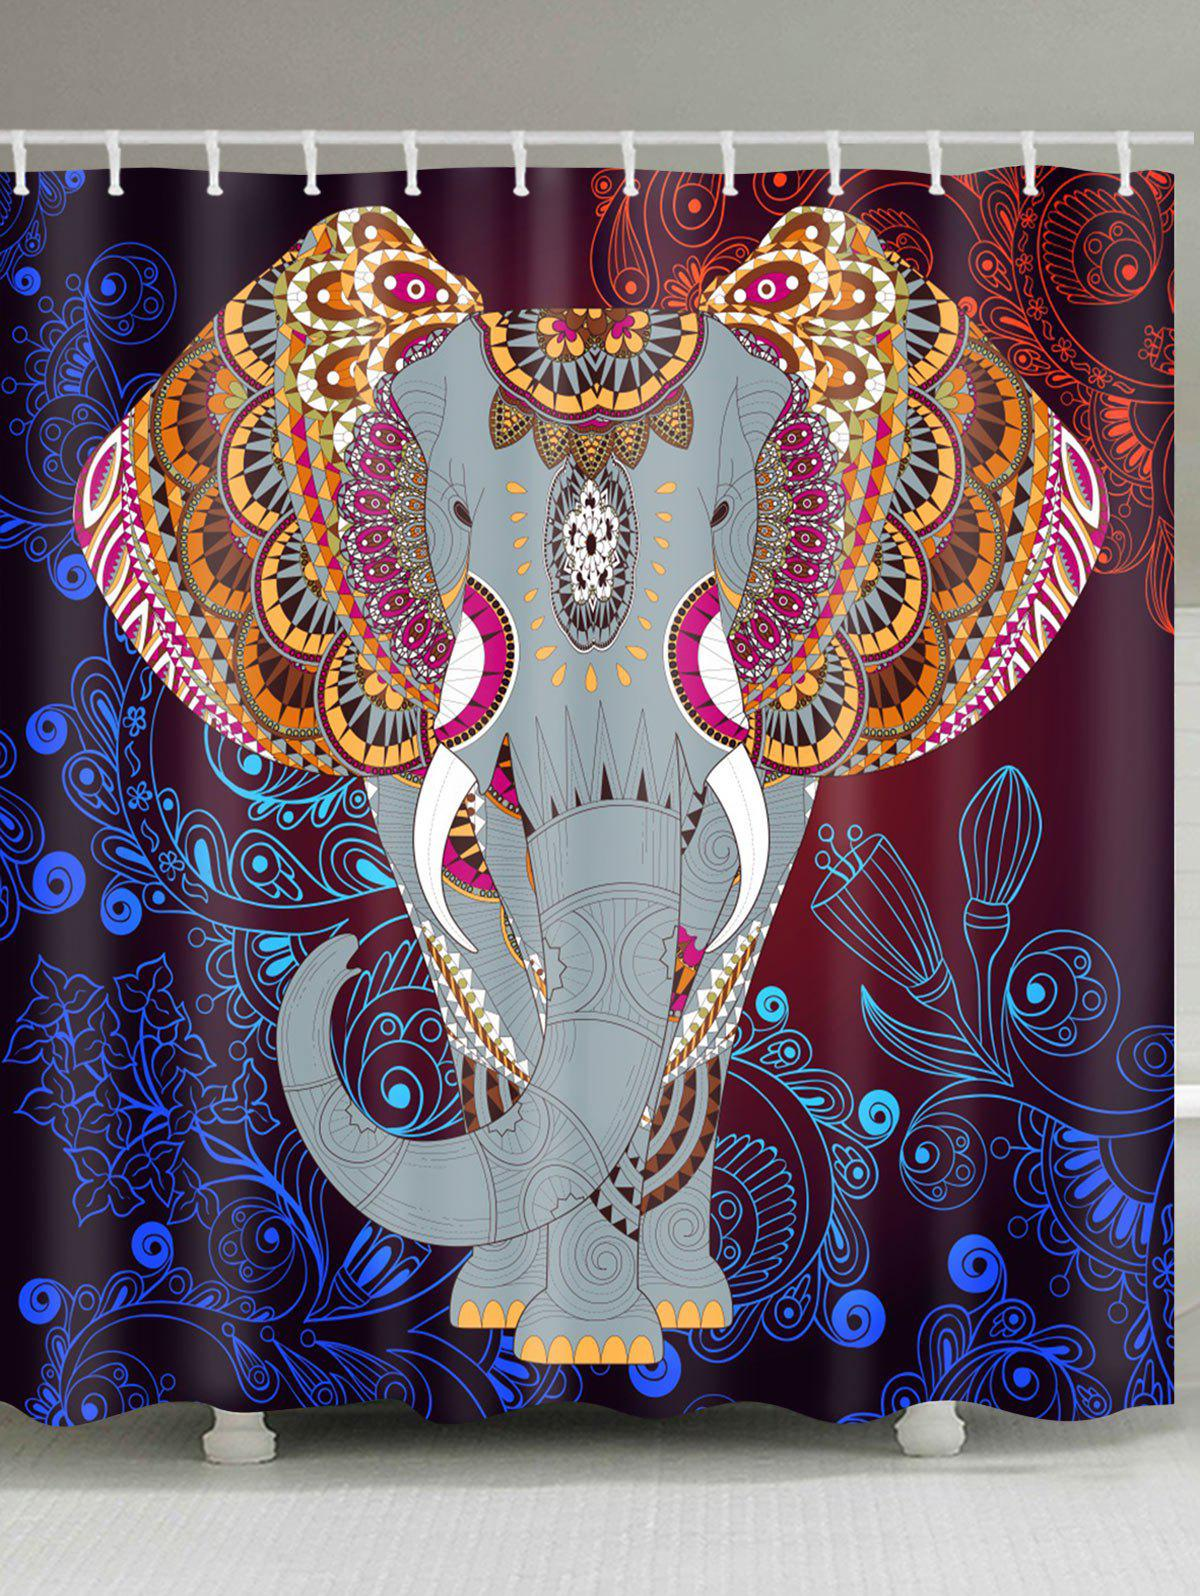 Latest Mandala Elephant Print Waterproof Bathroom Shower Curtain